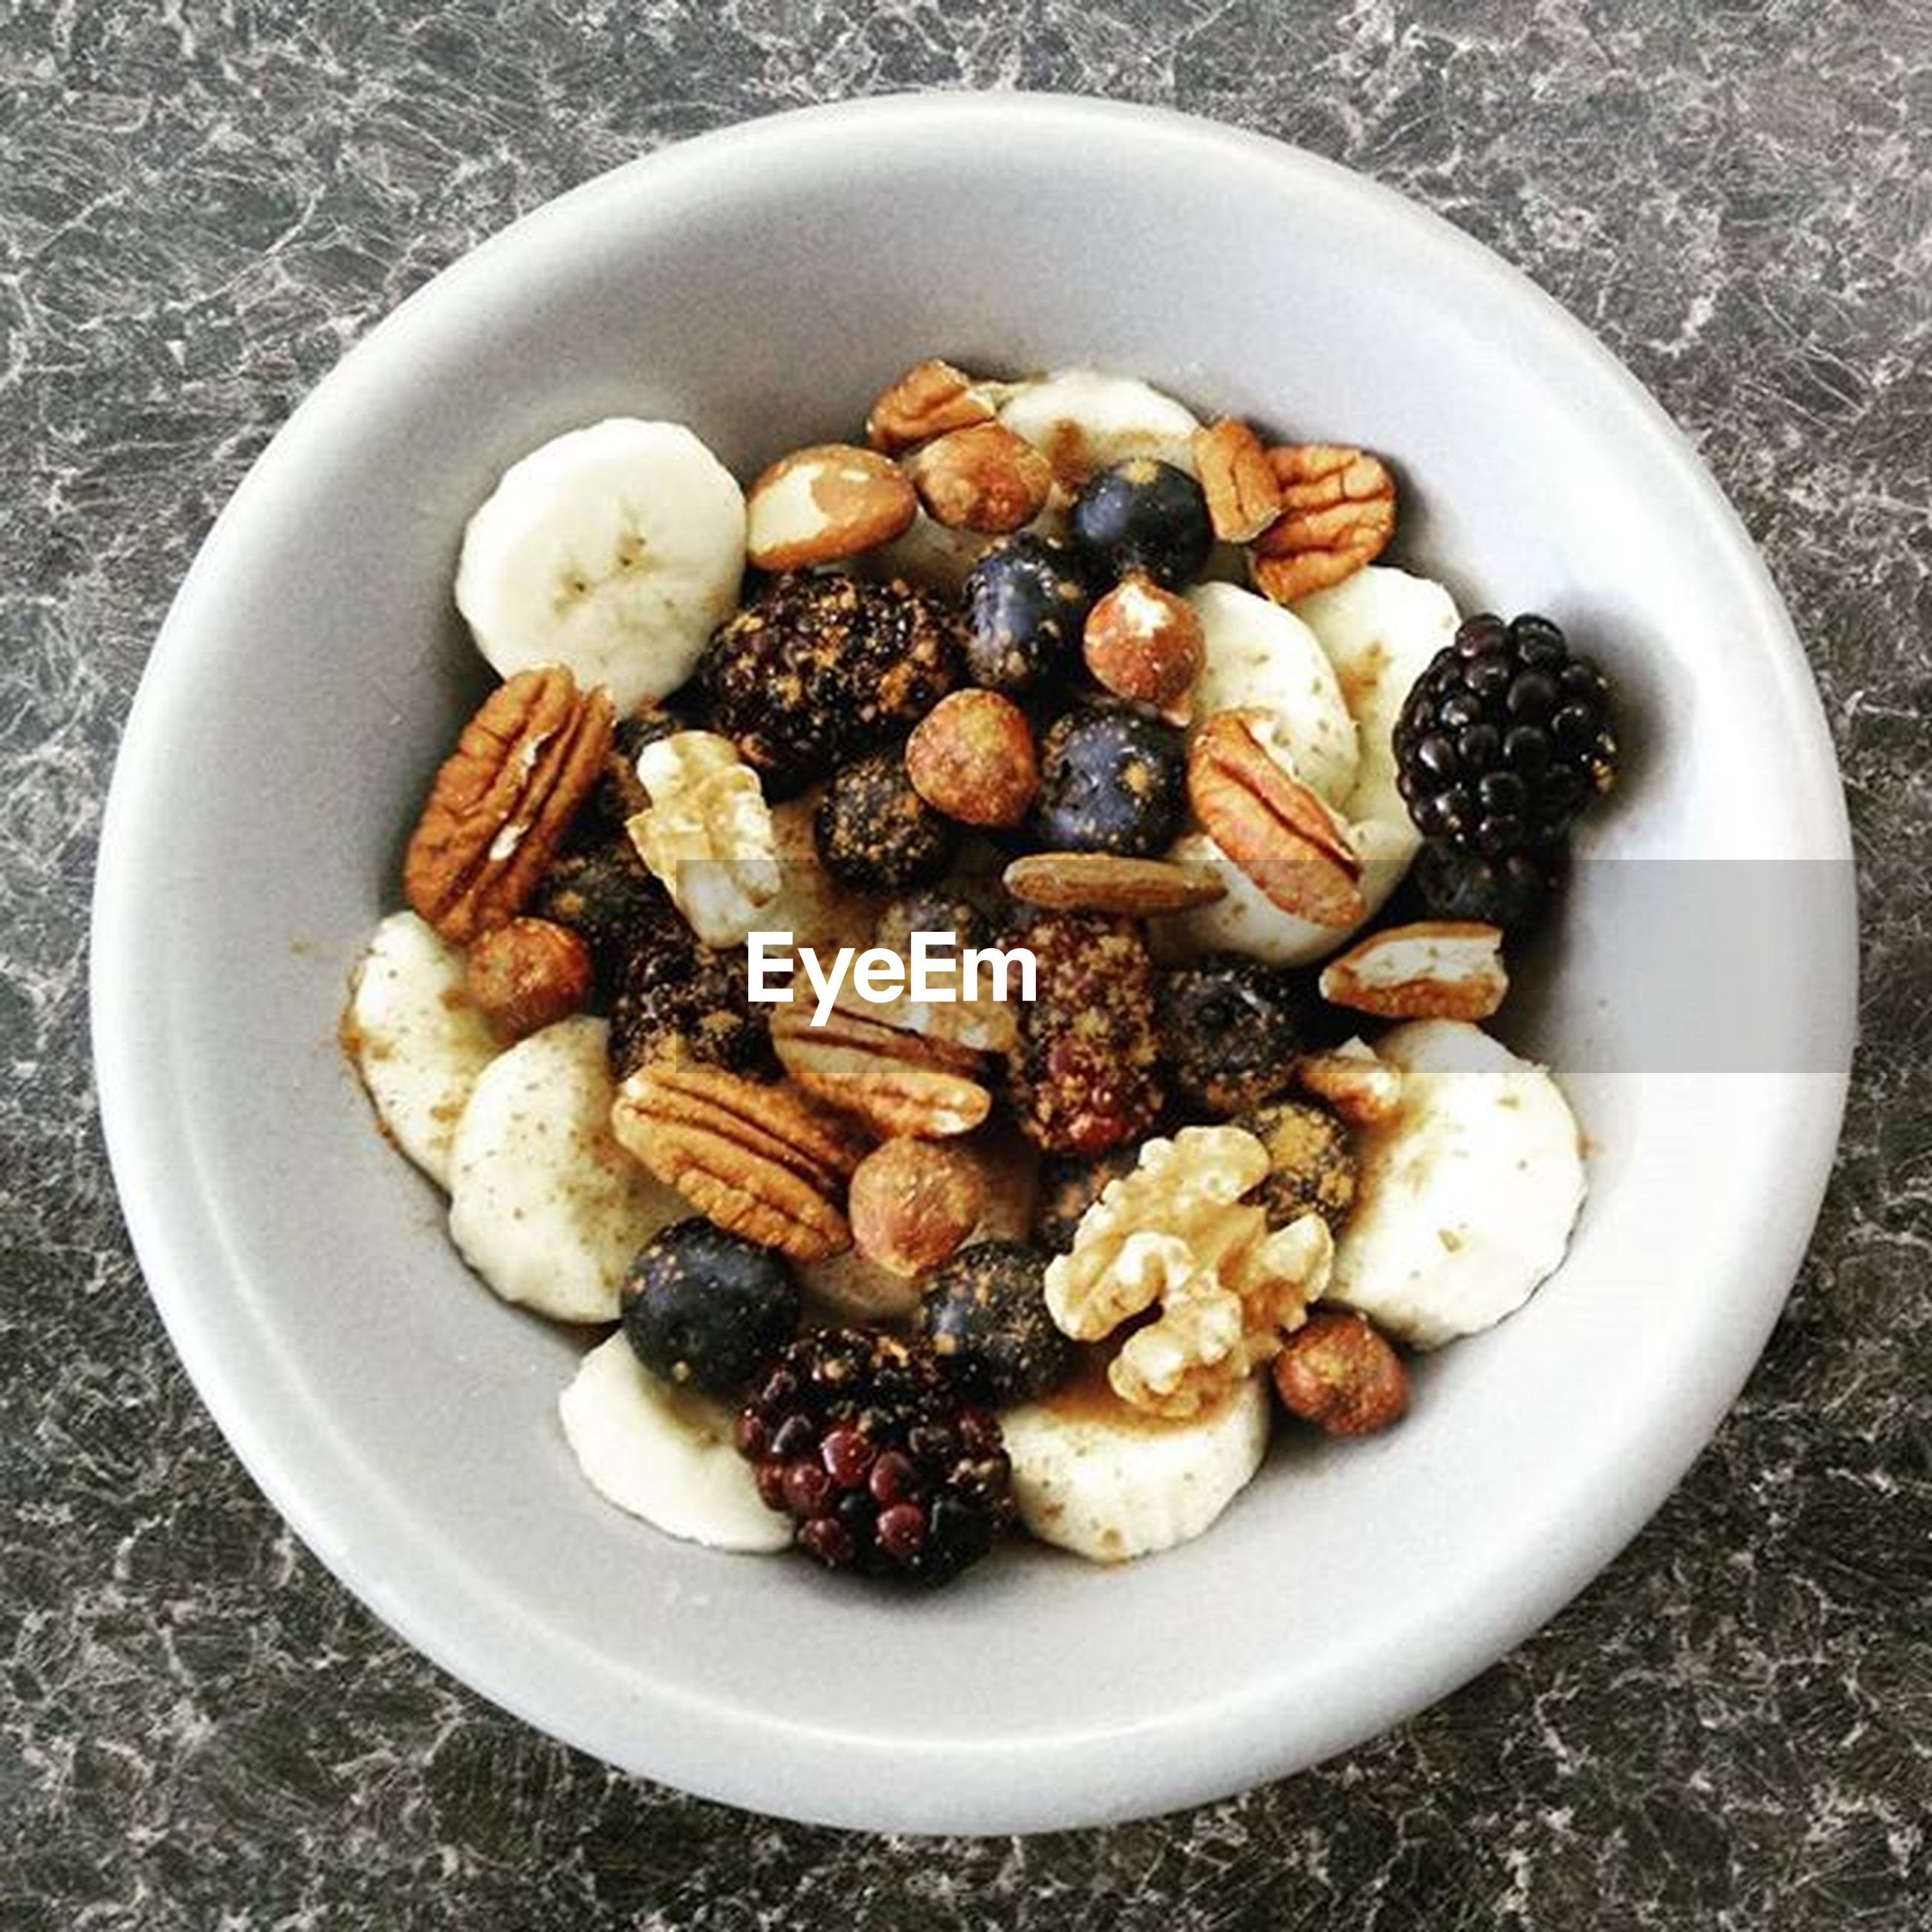 food and drink, food, freshness, healthy eating, still life, bowl, indoors, high angle view, directly above, close-up, plate, table, ready-to-eat, fruit, no people, abundance, large group of objects, overhead view, indulgence, breakfast